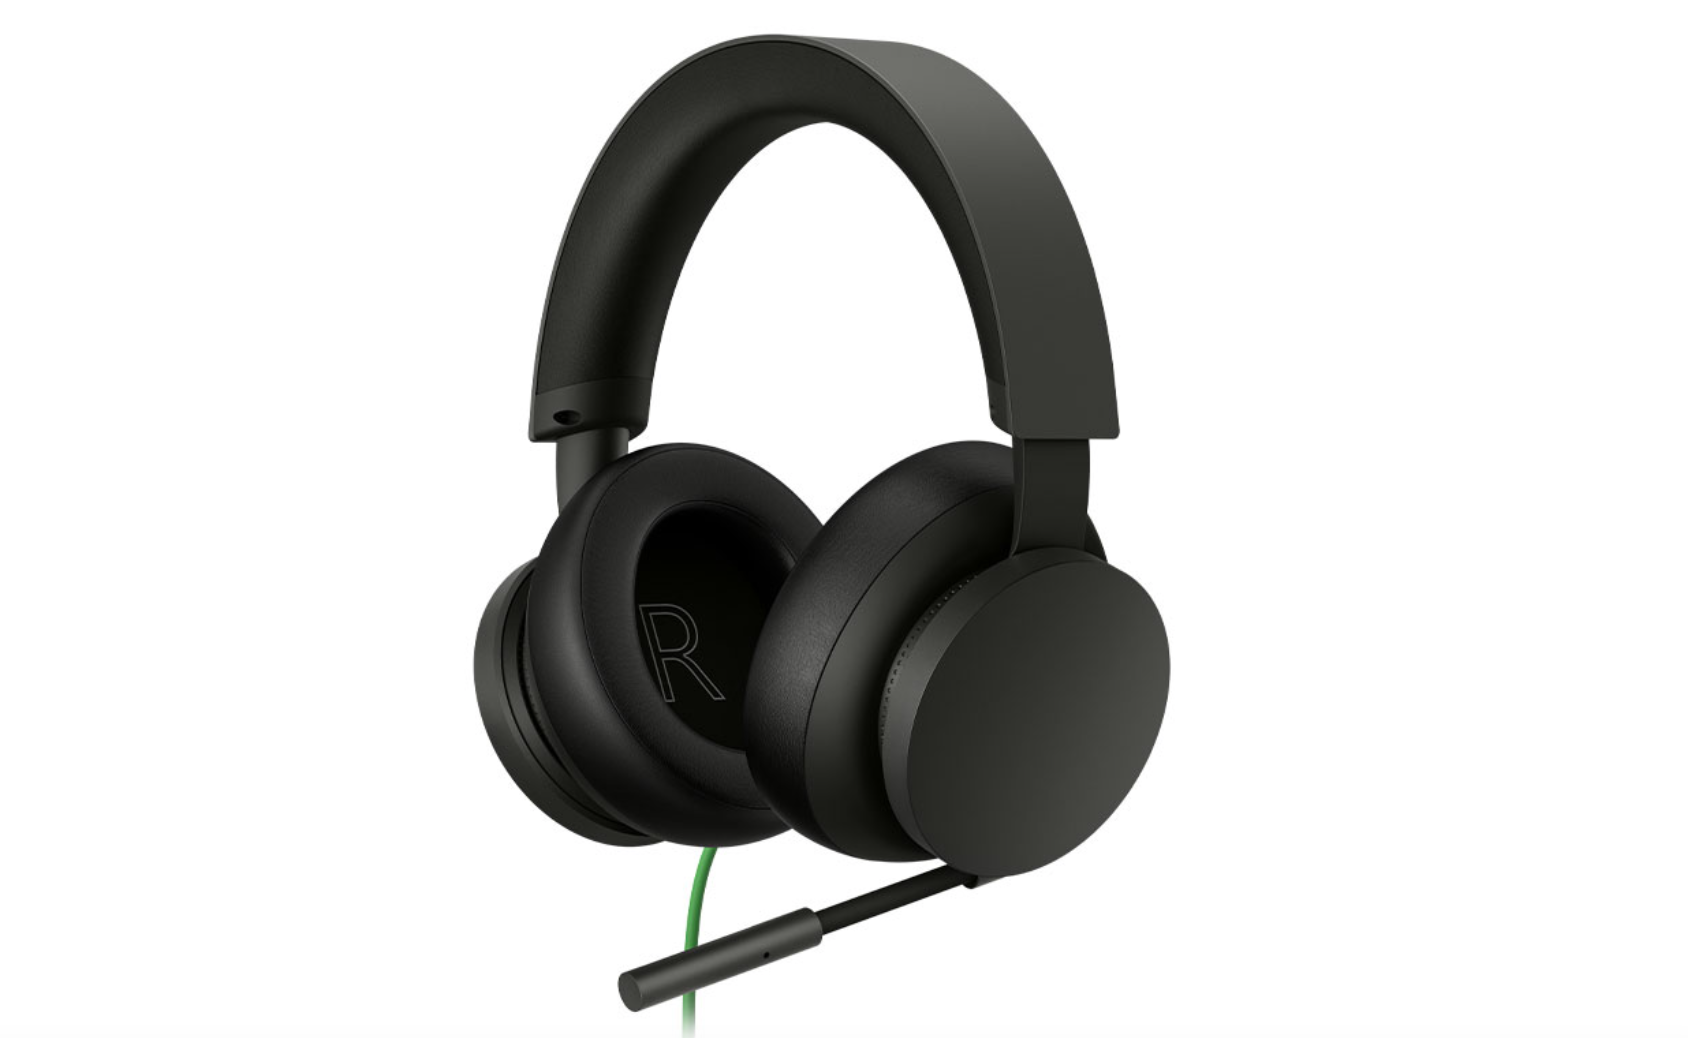 Microsoft declares new wired headset for Xbox